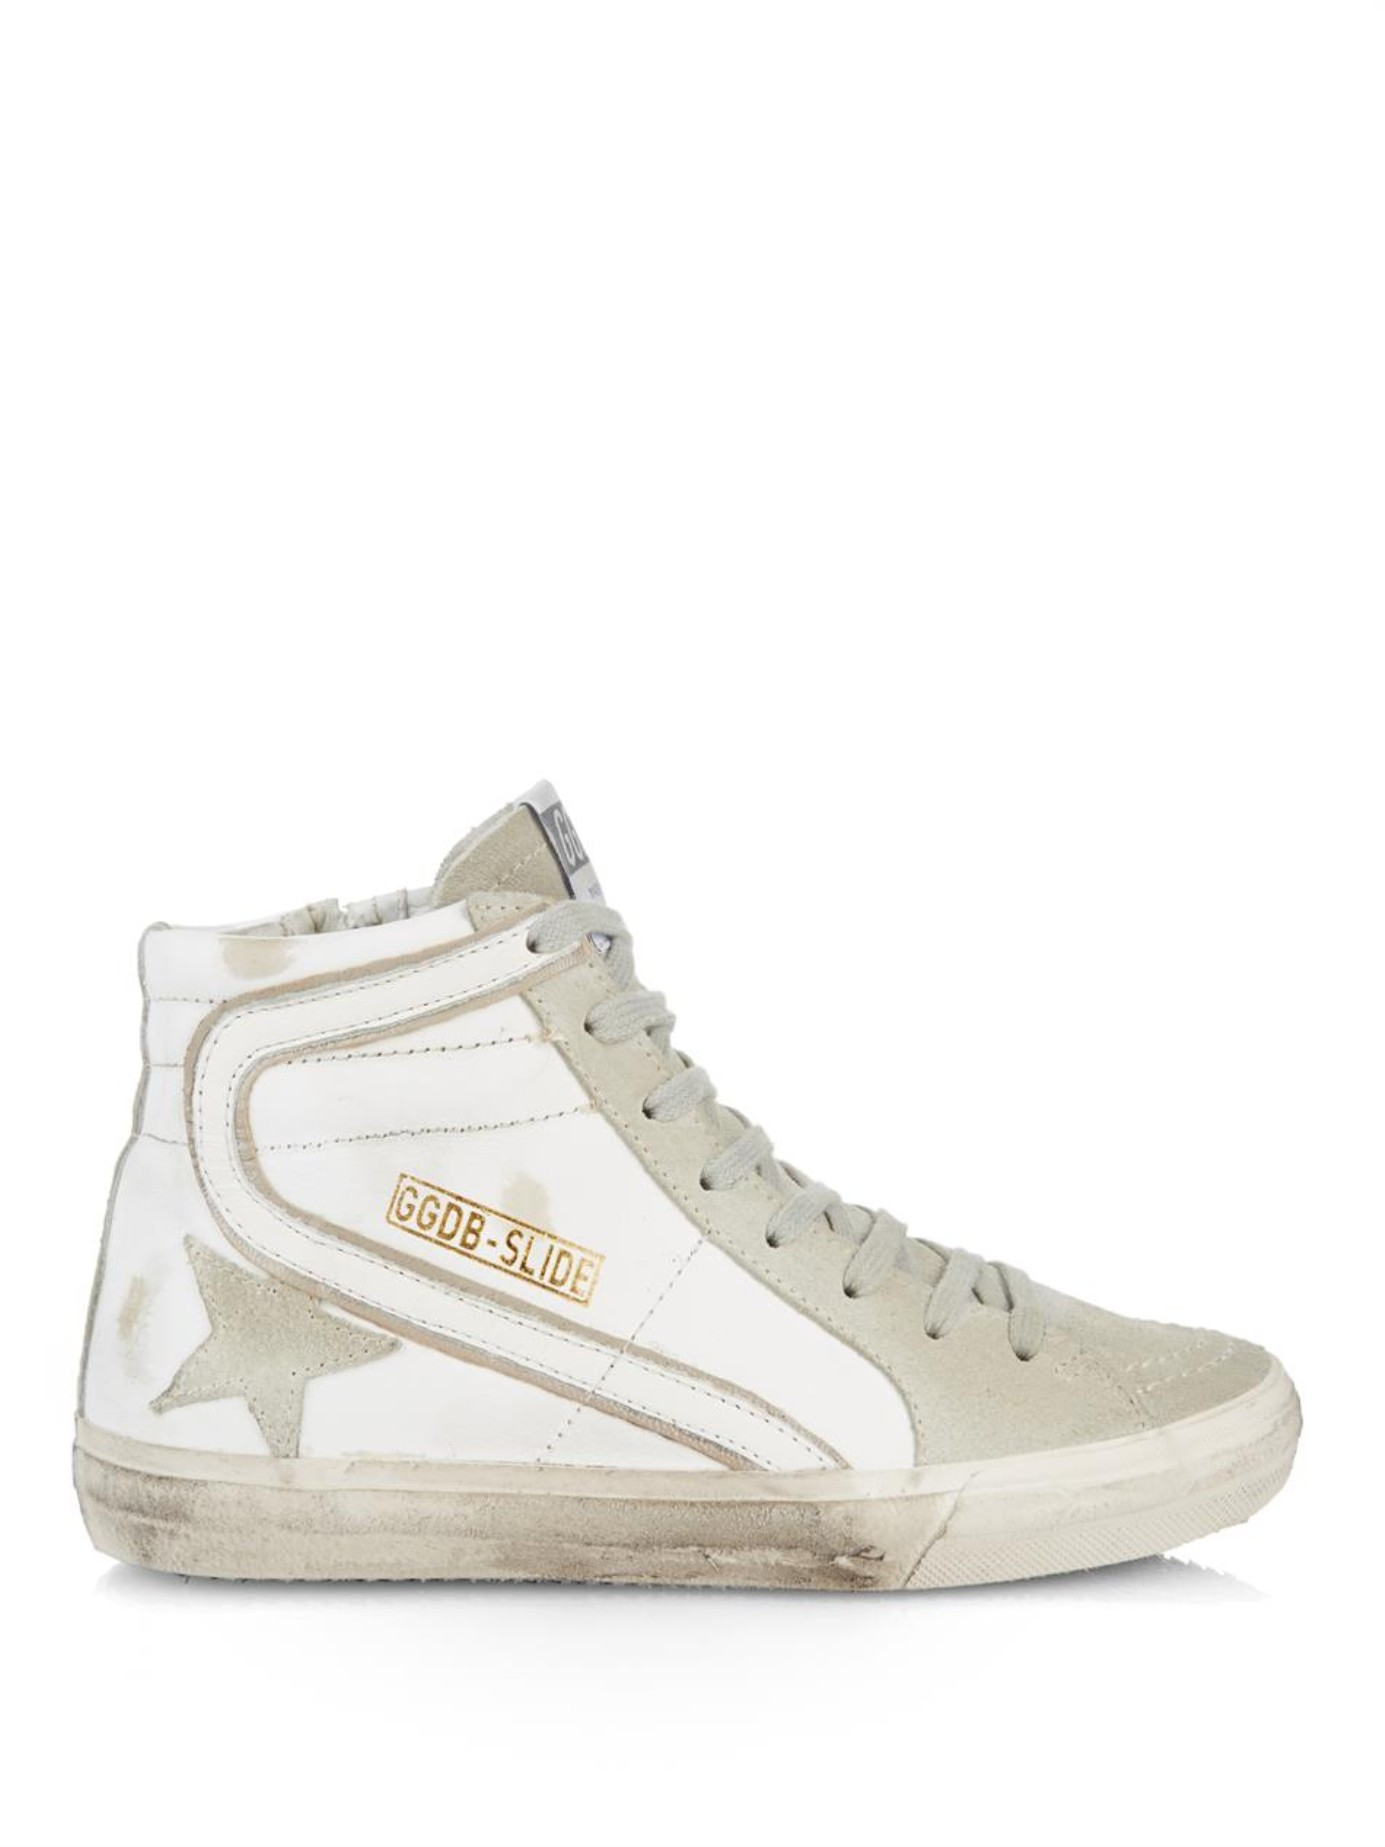 golden goose deluxe brand slide high top leather sneakers in white lyst. Black Bedroom Furniture Sets. Home Design Ideas